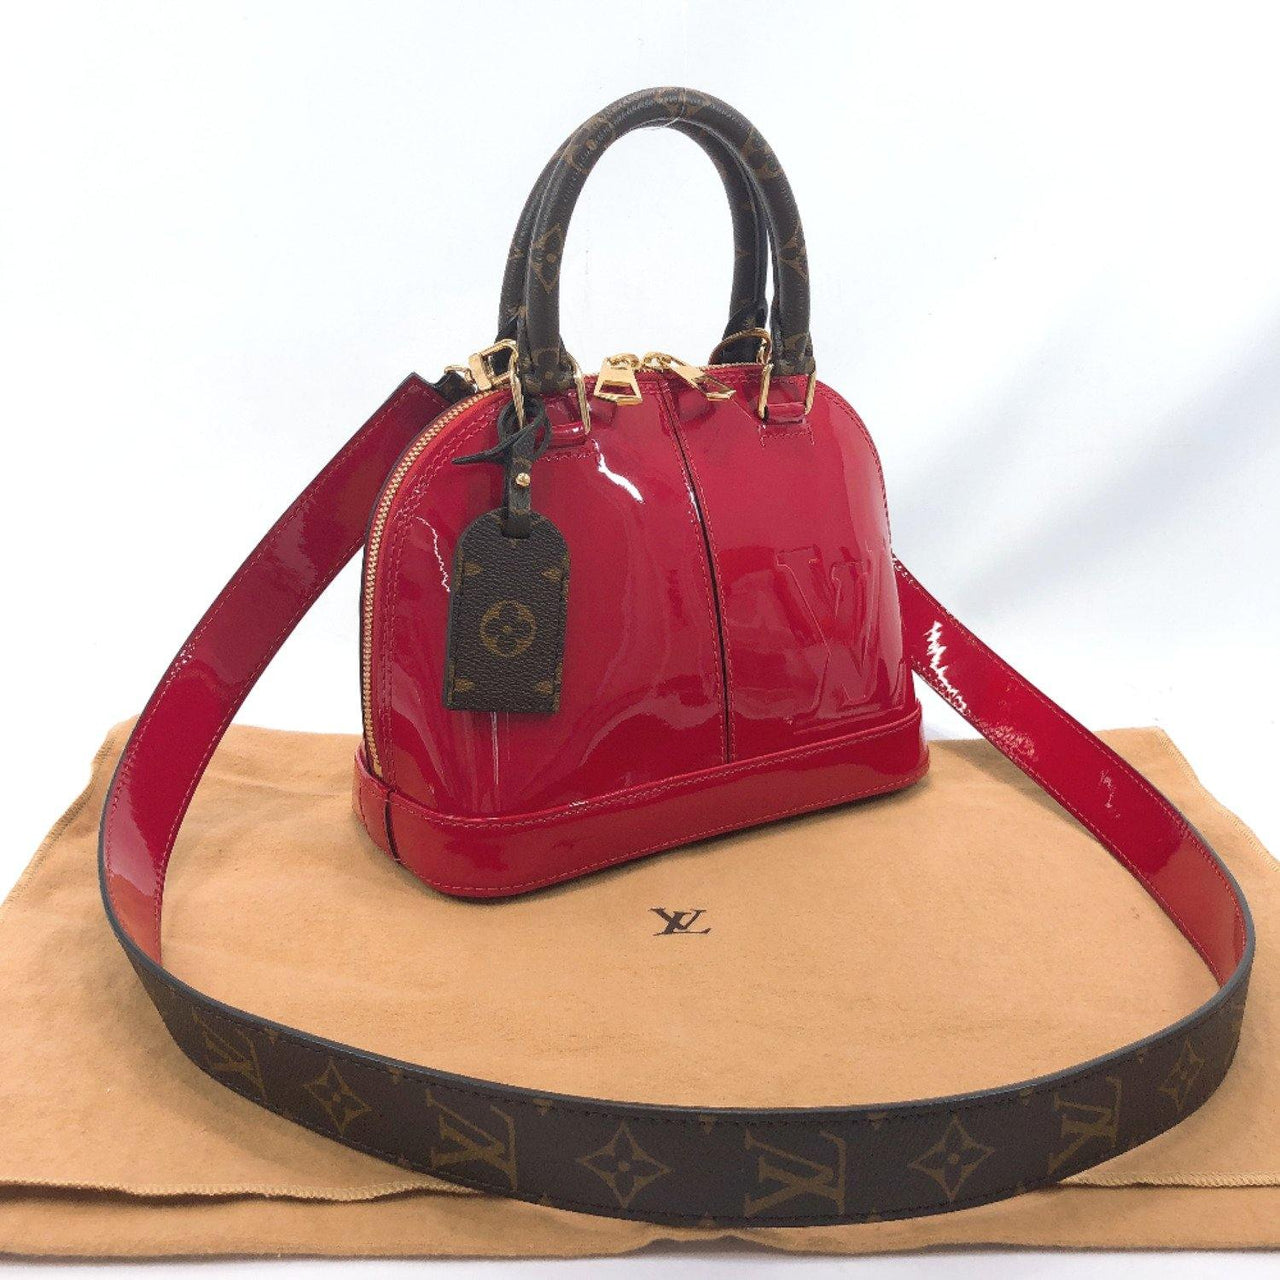 LOUIS VUITTON Handbag M52498 Alma BB Vernis Red (scarlet) Women Used - JP-BRANDS.com